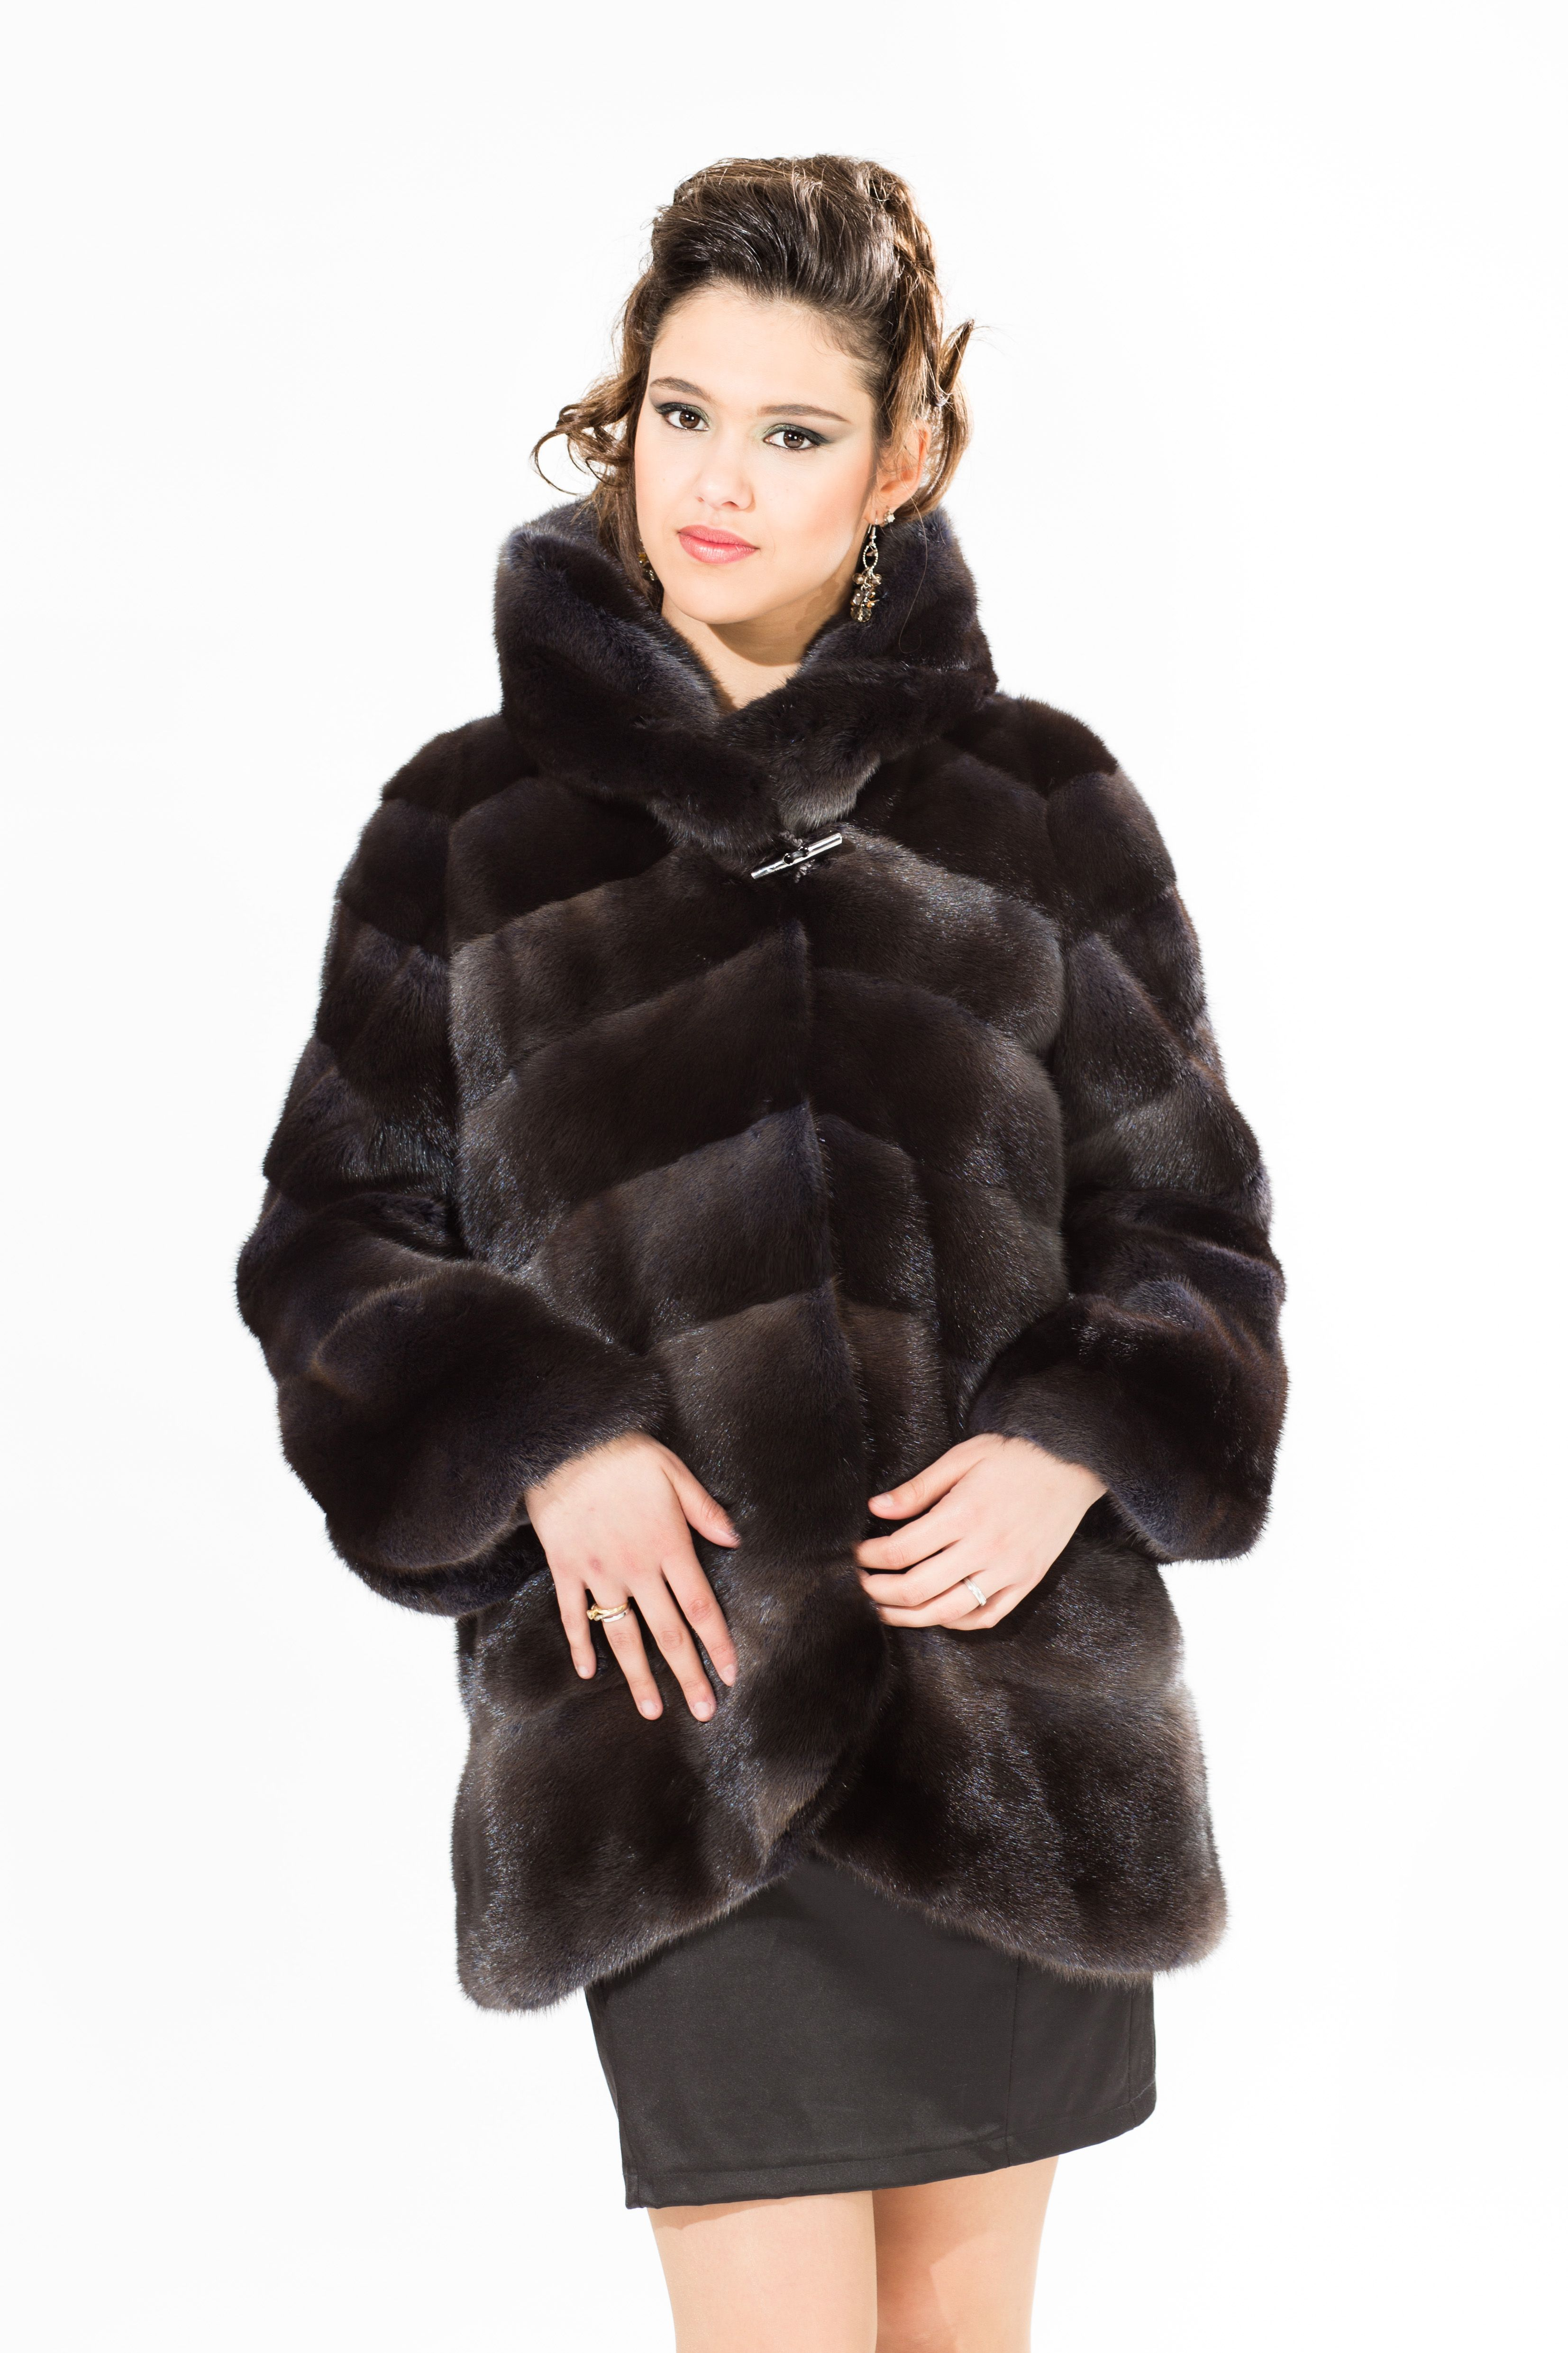 Fur coats from cropped beaver: models, tips on choosing. How to clean a fur coat from a short-haired beaver 41